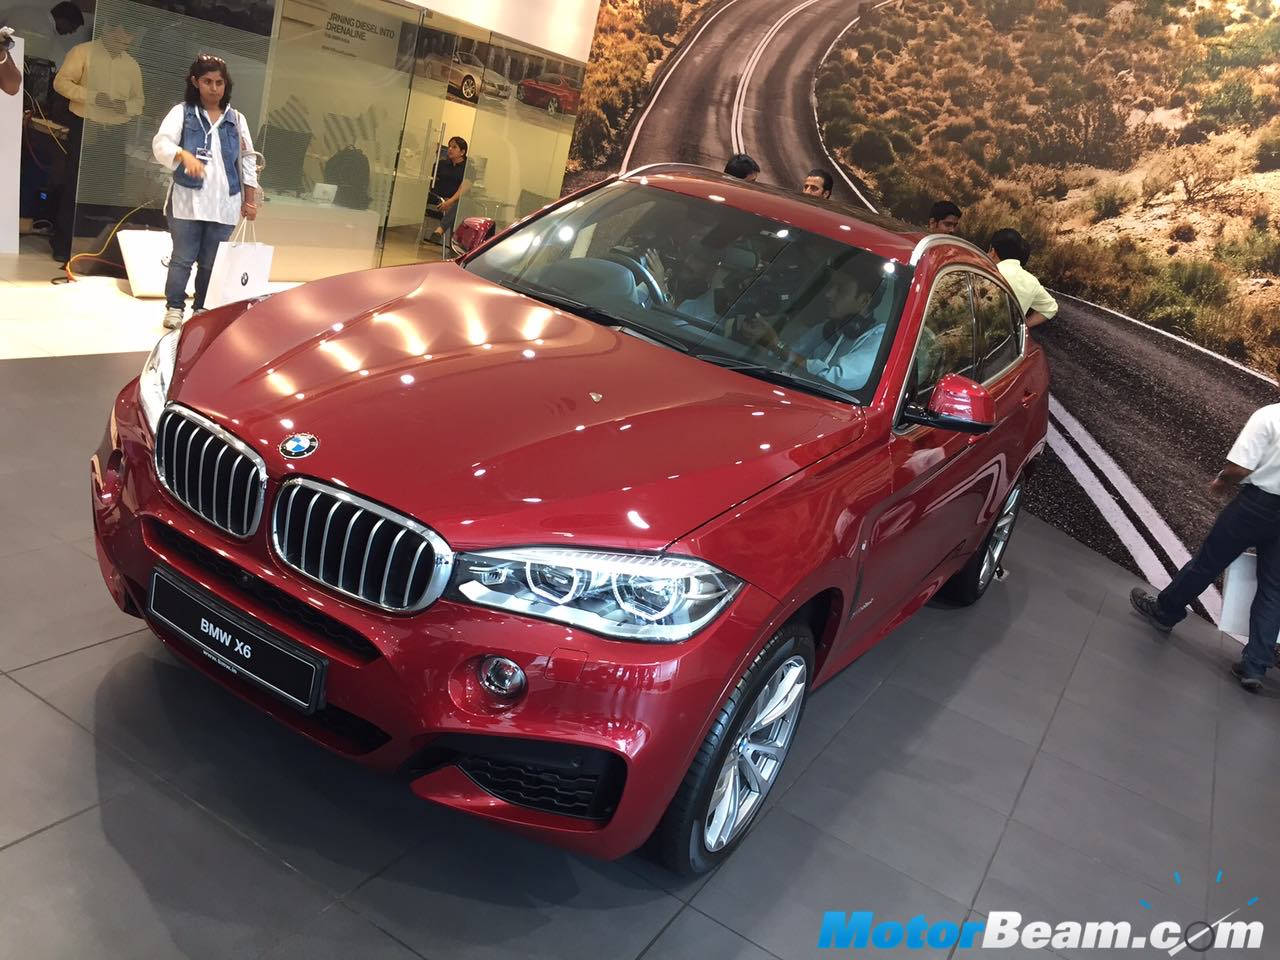 2015 BMW X6 Facelift Price